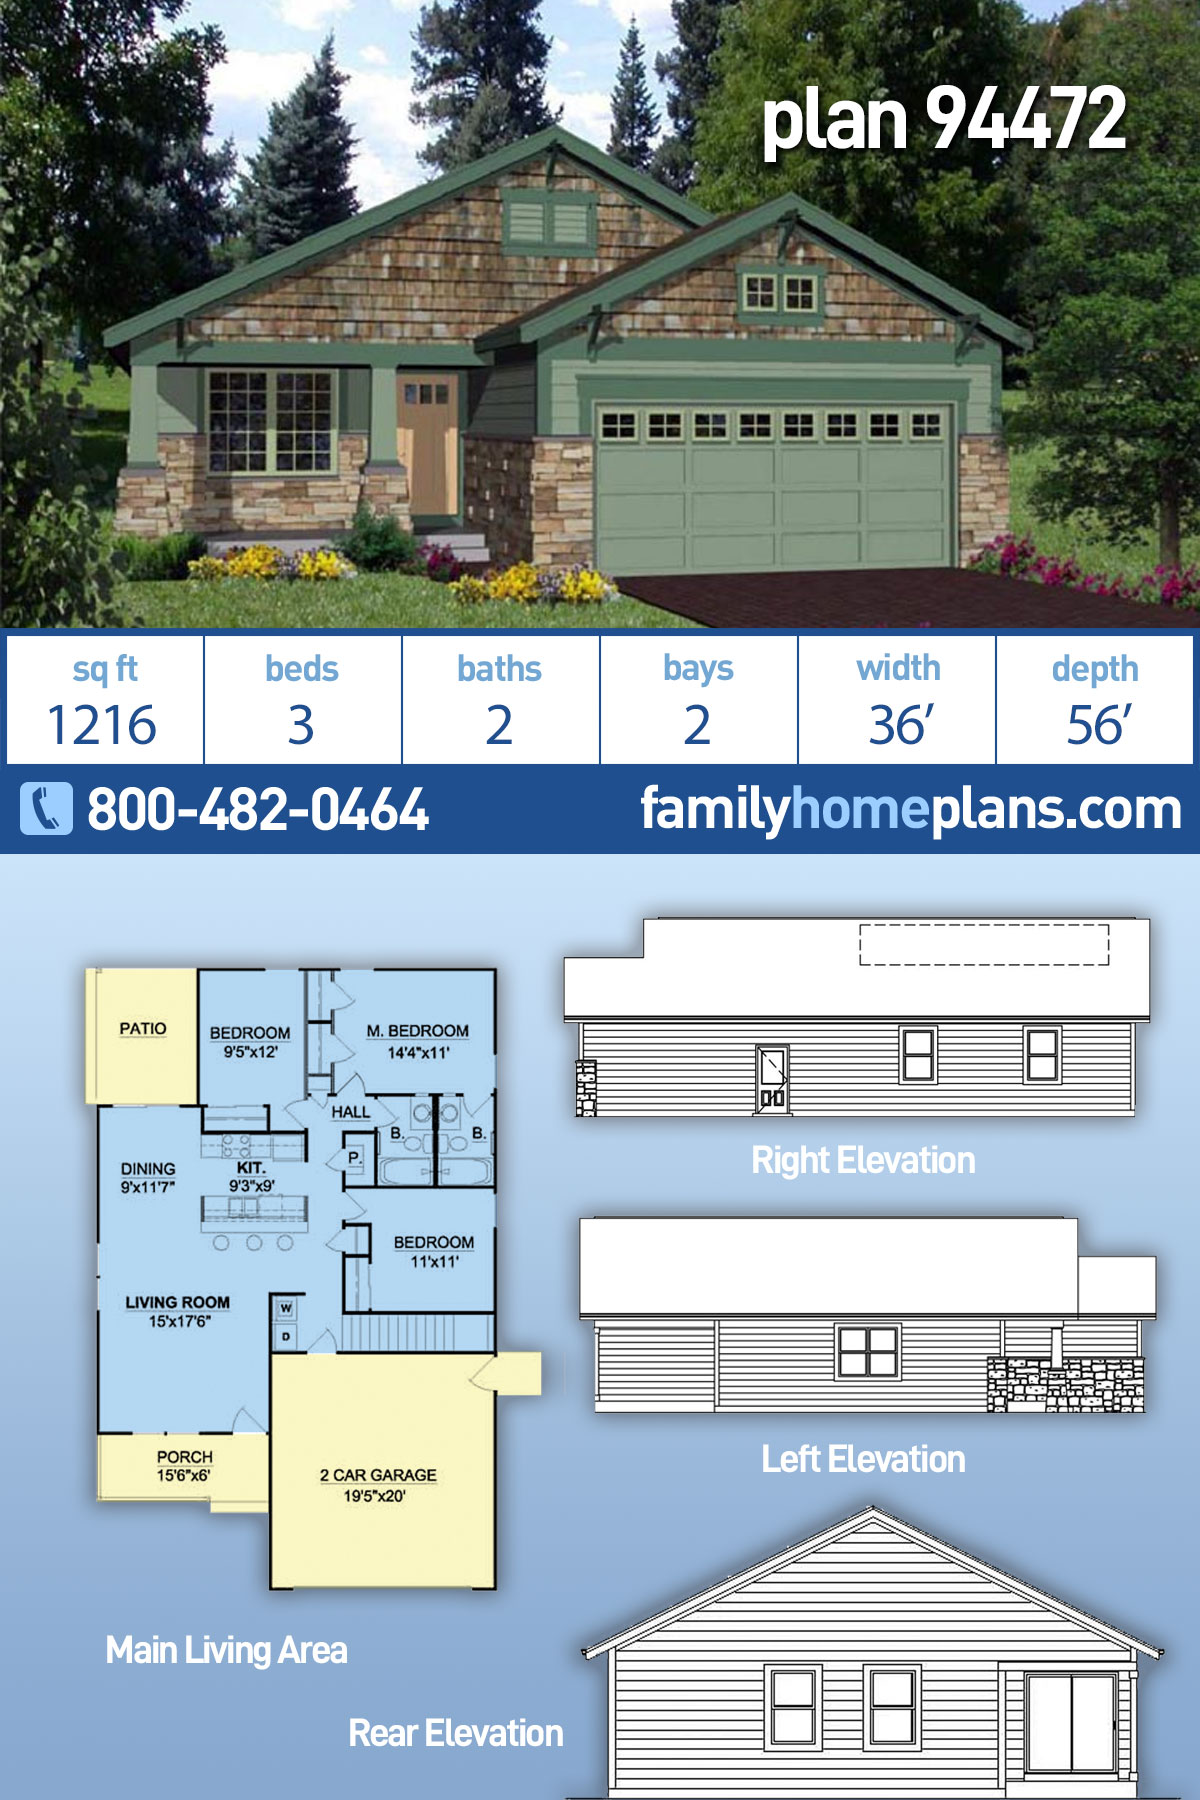 Craftsman House Plan 94472 with 3 Beds, 2 Baths, 2 Car Garage